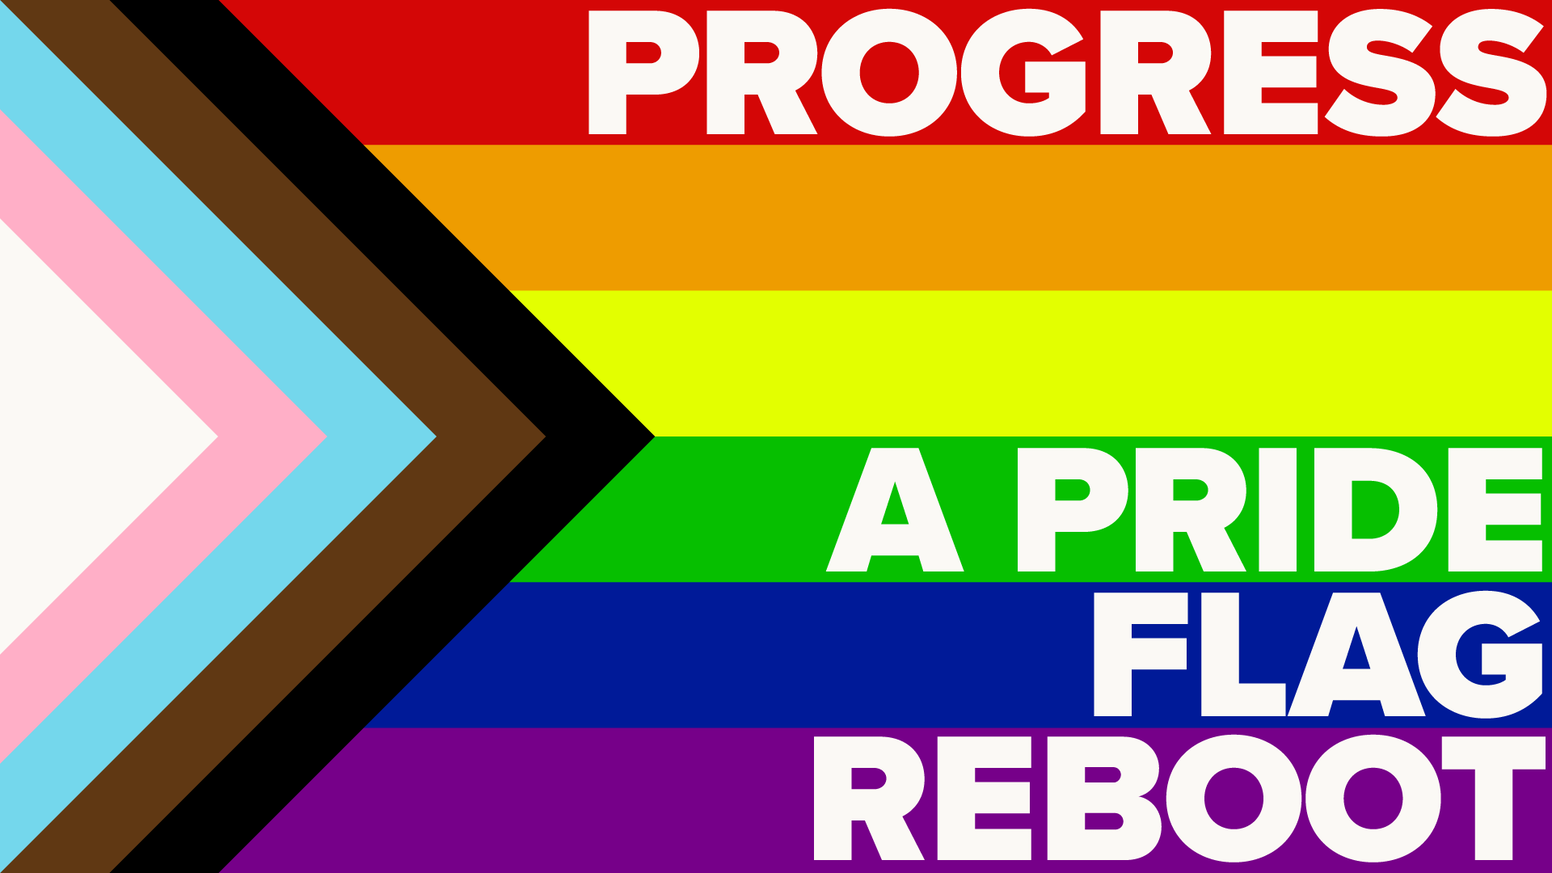 A reboot of the lgbtq pride flag with an emphasis on inclusion and progression